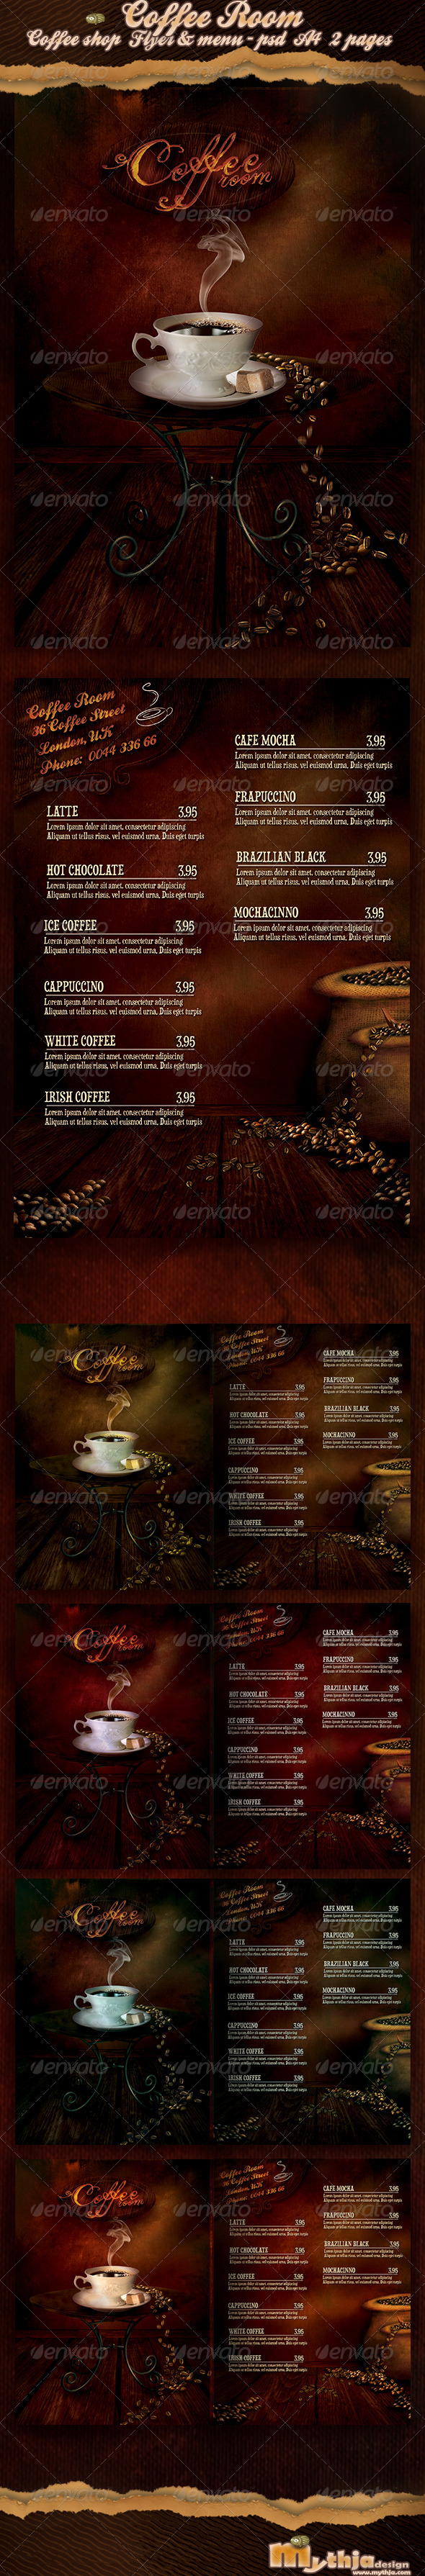 Coffee Room Coffee Shop Flyer & Menu